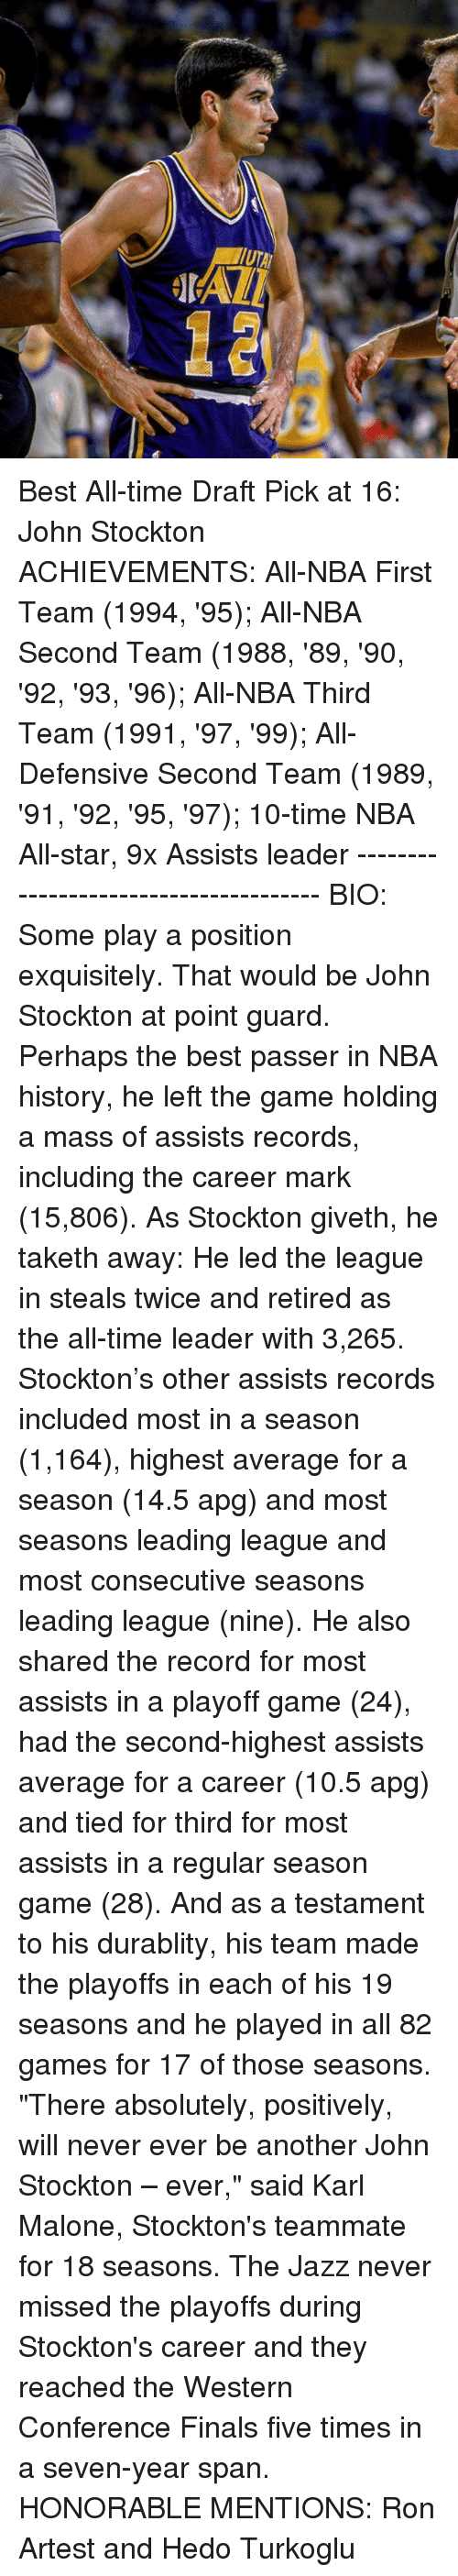 """nba all stars: Best All-time Draft Pick at 16: John Stockton ACHIEVEMENTS: All-NBA First Team (1994, '95); All-NBA Second Team (1988, '89, '90, '92, '93, '96); All-NBA Third Team (1991, '97, '99); All-Defensive Second Team (1989, '91, '92, '95, '97); 10-time NBA All-star, 9x Assists leader -------------------------------------- BIO: Some play a position exquisitely. That would be John Stockton at point guard. Perhaps the best passer in NBA history, he left the game holding a mass of assists records, including the career mark (15,806). As Stockton giveth, he taketh away: He led the league in steals twice and retired as the all-time leader with 3,265. Stockton's other assists records included most in a season (1,164), highest average for a season (14.5 apg) and most seasons leading league and most consecutive seasons leading league (nine). He also shared the record for most assists in a playoff game (24), had the second-highest assists average for a career (10.5 apg) and tied for third for most assists in a regular season game (28). And as a testament to his durablity, his team made the playoffs in each of his 19 seasons and he played in all 82 games for 17 of those seasons. """"There absolutely, positively, will never ever be another John Stockton – ever,"""" said Karl Malone, Stockton's teammate for 18 seasons. The Jazz never missed the playoffs during Stockton's career and they reached the Western Conference Finals five times in a seven-year span. HONORABLE MENTIONS: Ron Artest and Hedo Turkoglu"""